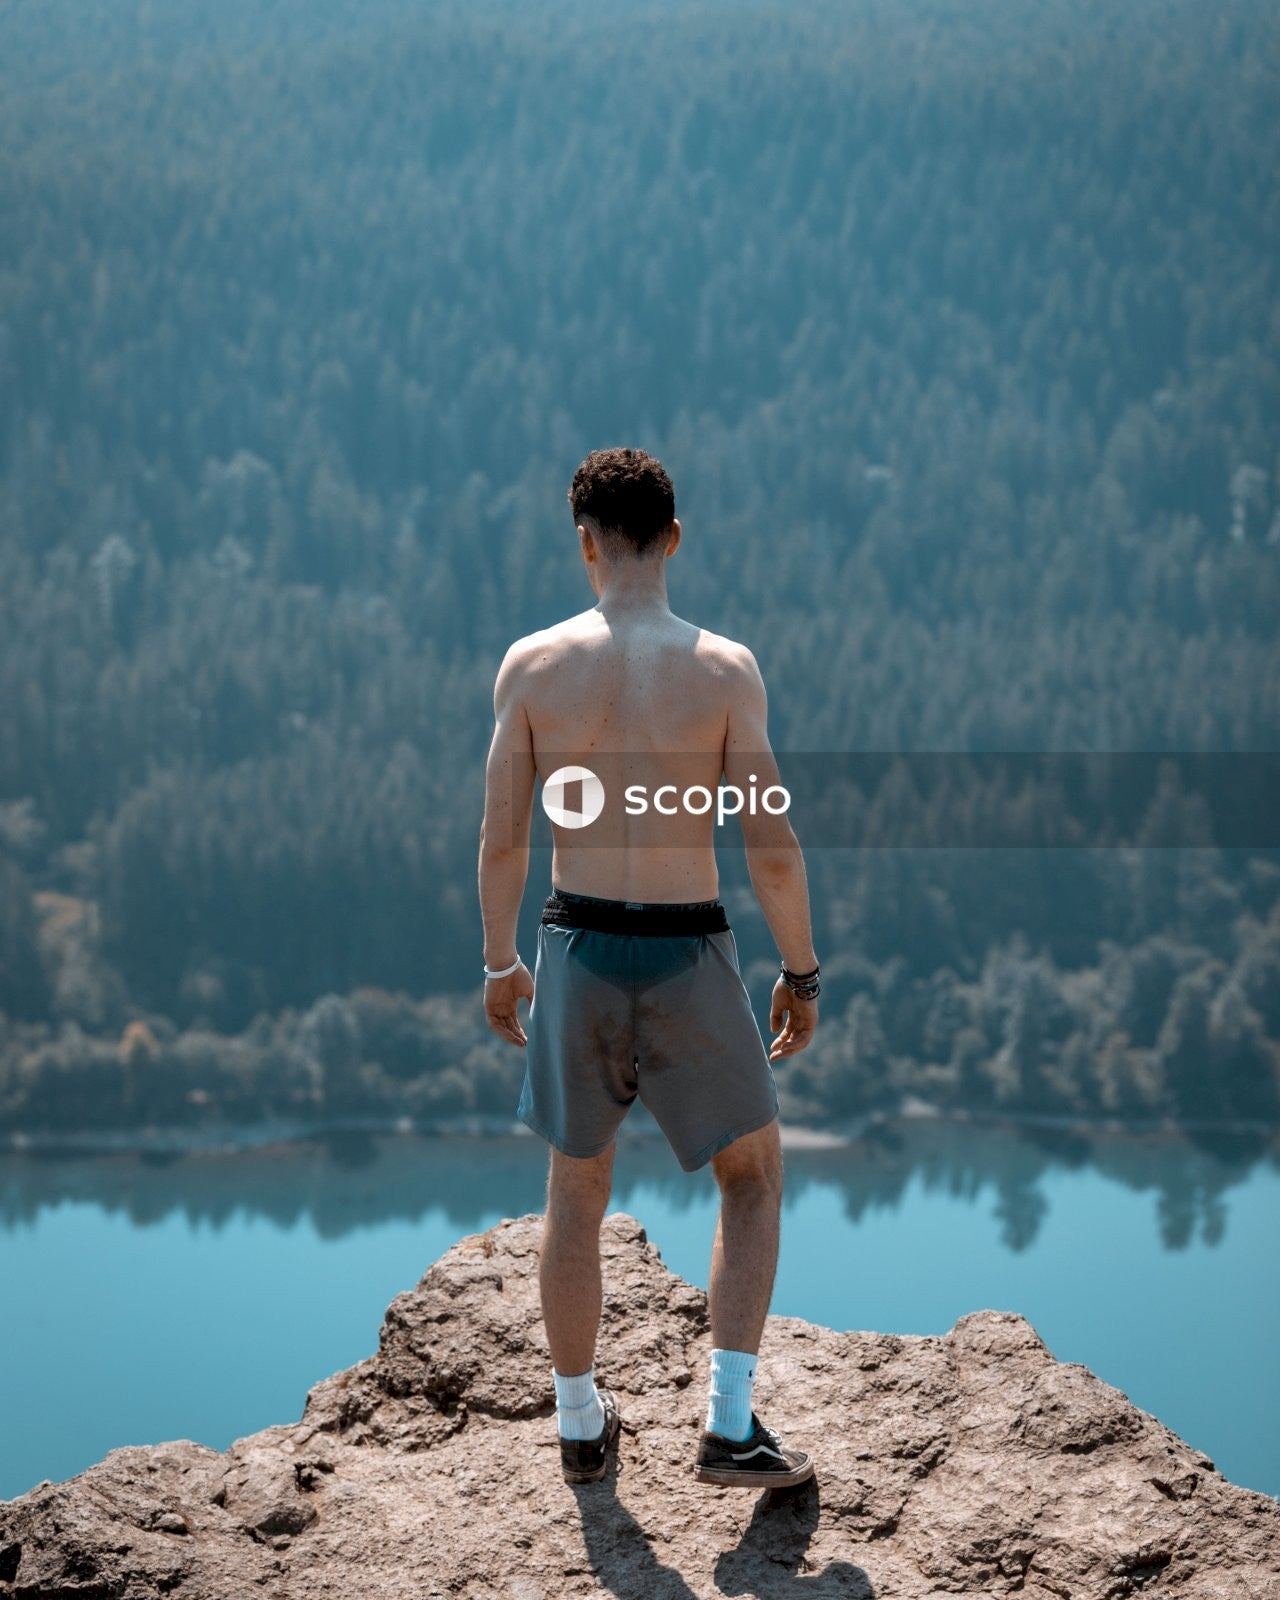 Topless man in black shorts standing on brown rock near body of water